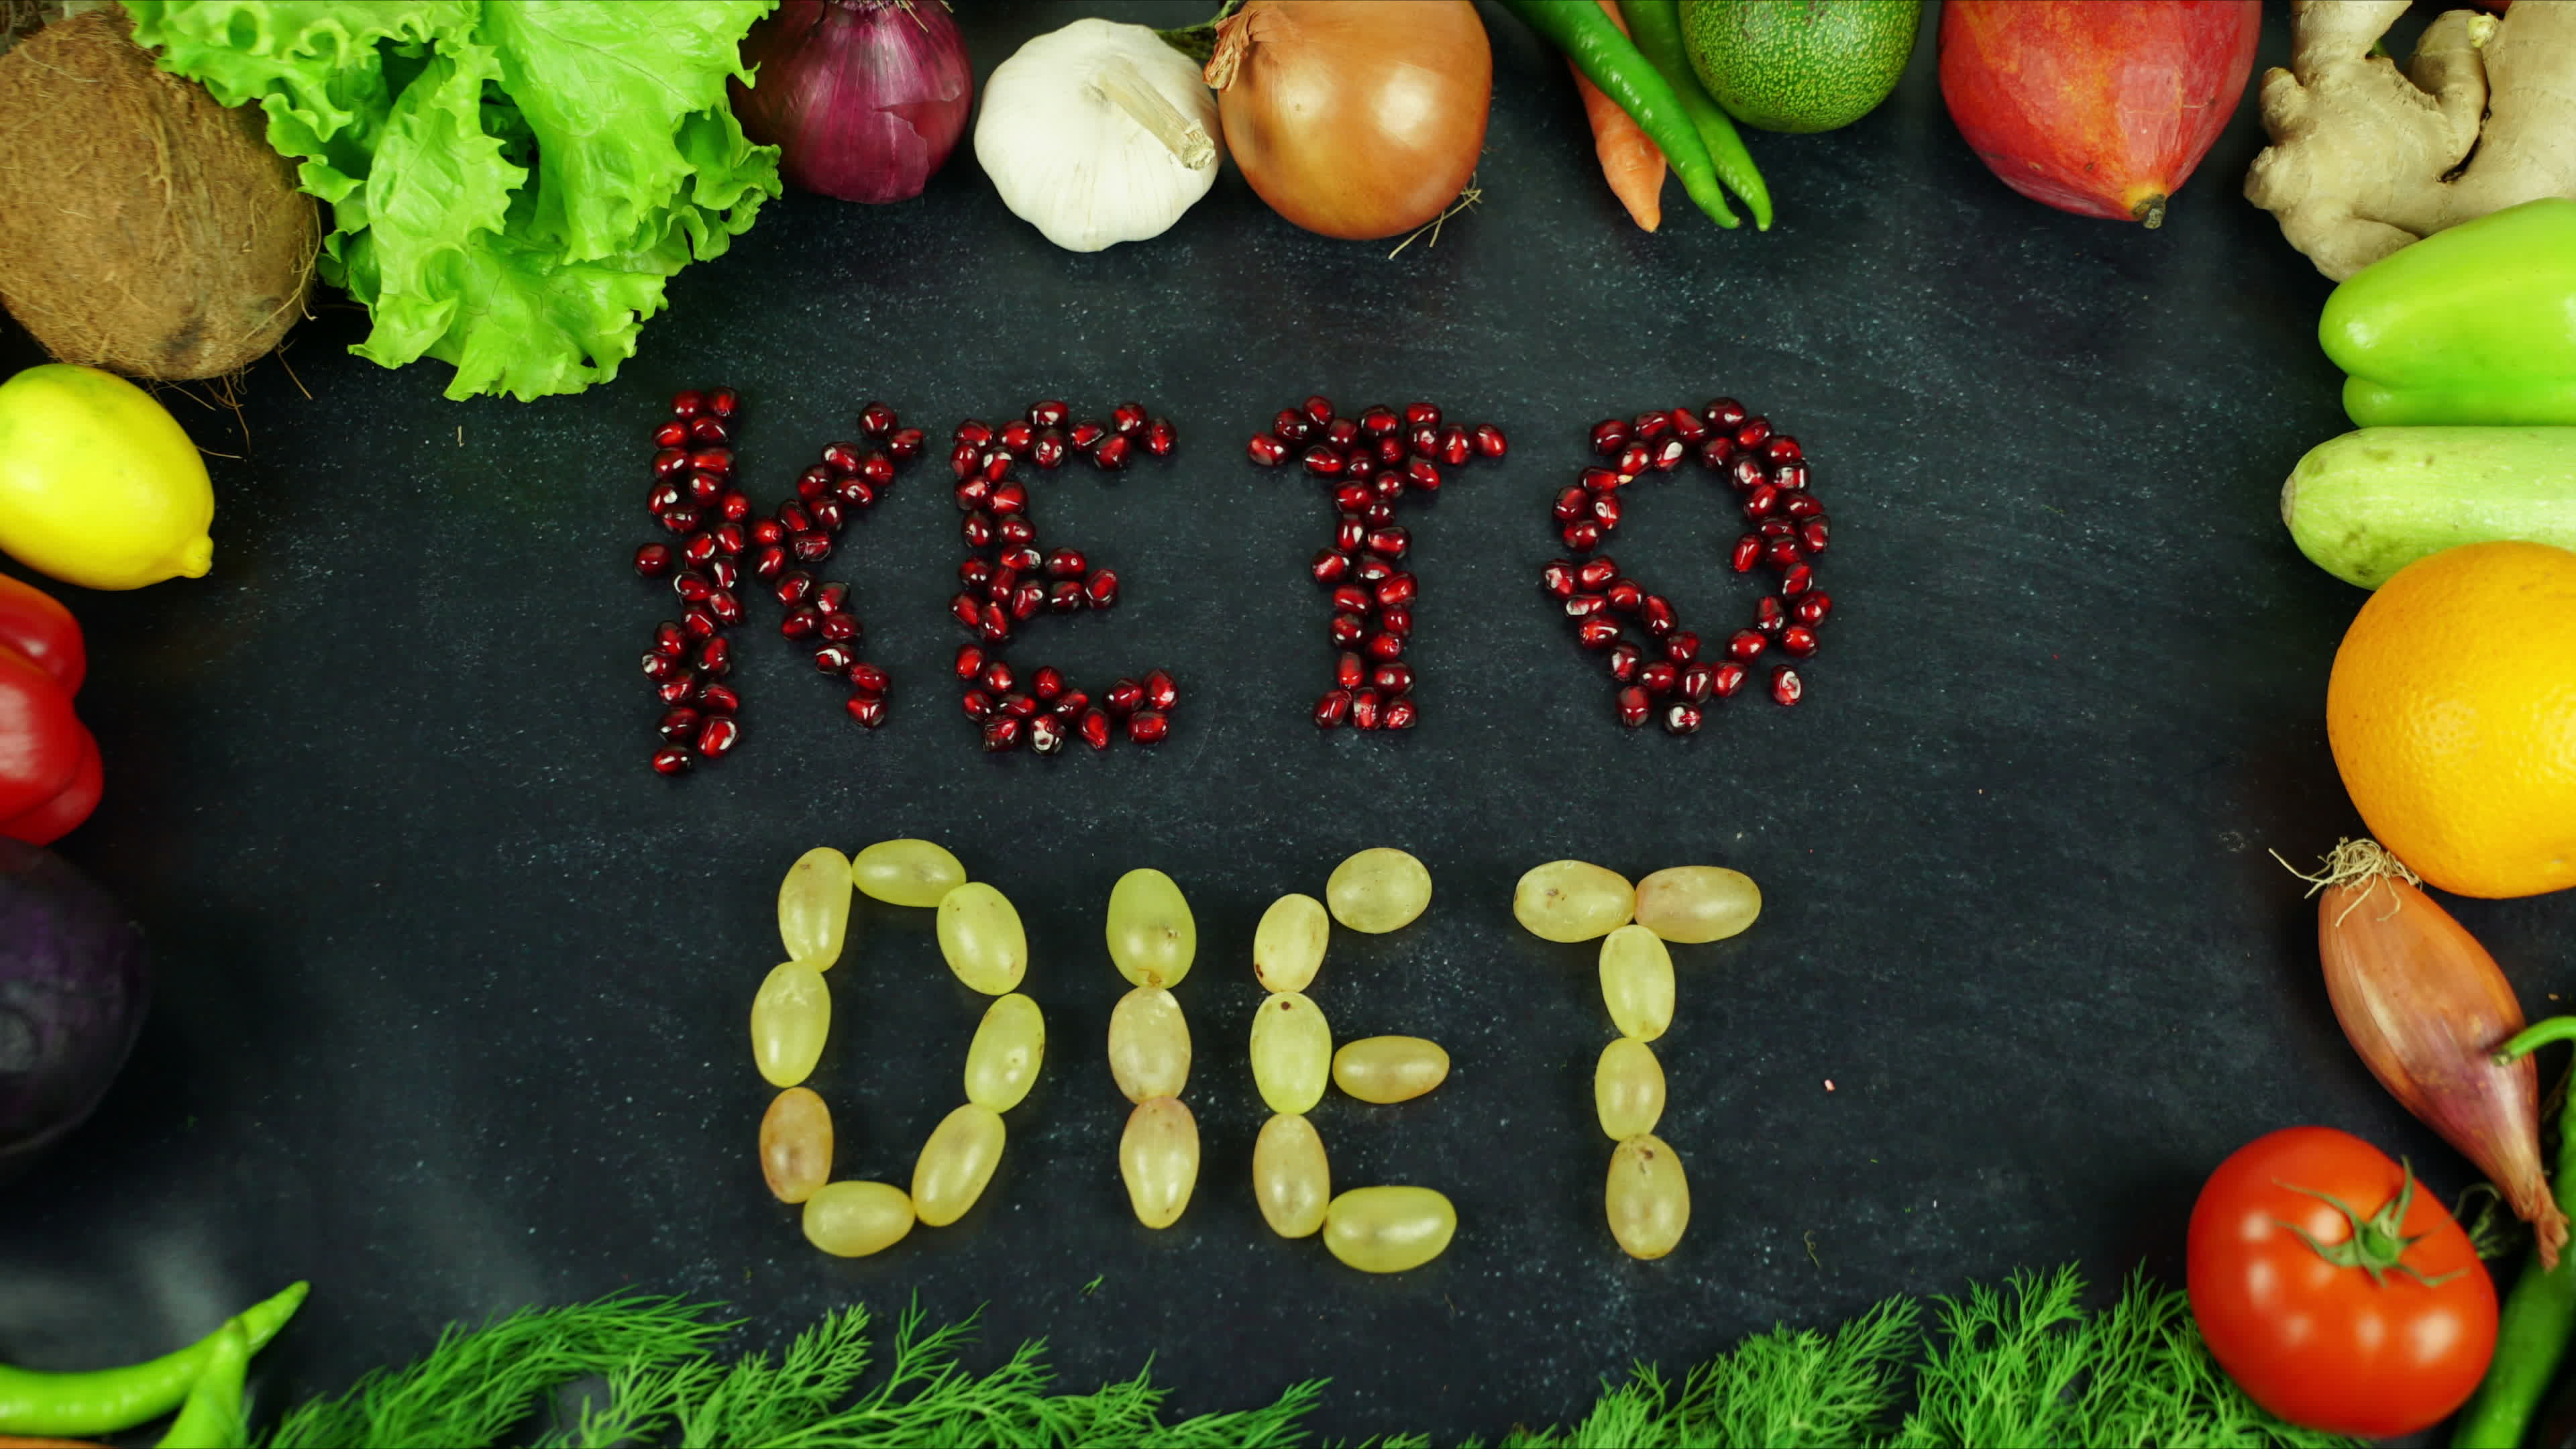 Fruits and veggies spelling out the words 'keto diet'